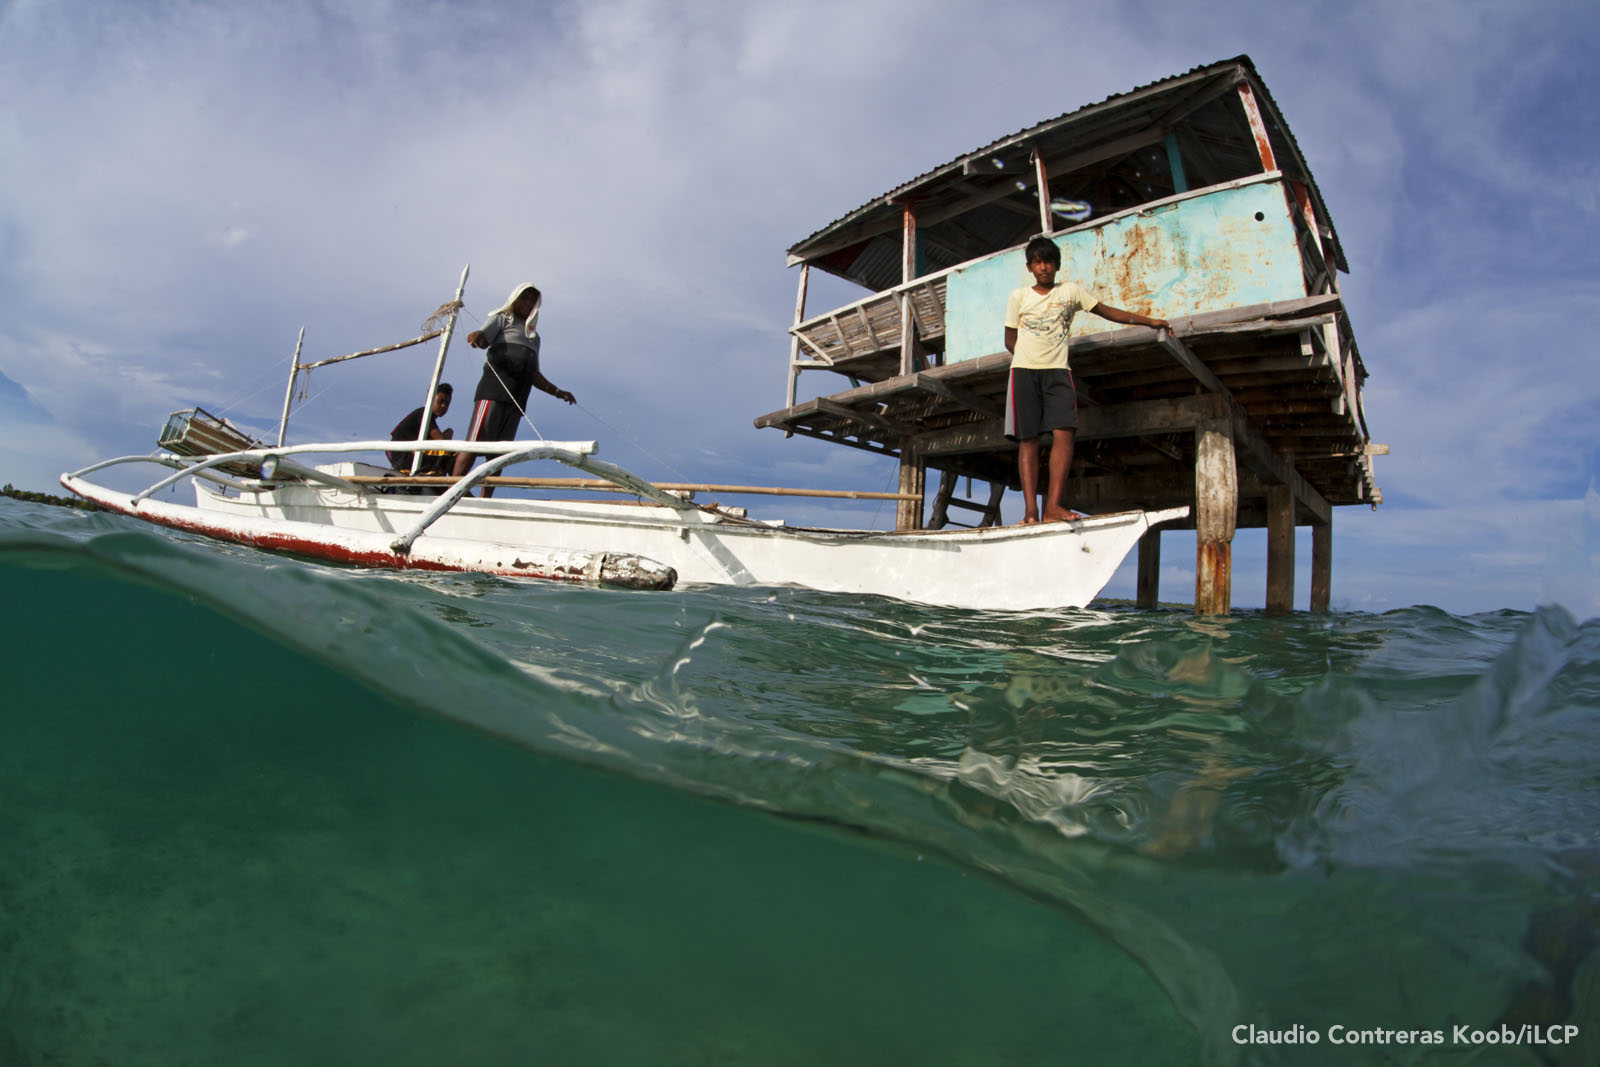 Villagers arrive at their MPA guardhouse. Marine protected areas are no-fishing zones where threatened species such as seahorses and habitats such as coral reefs can recover. Claudio Contreras Koob/iLCP